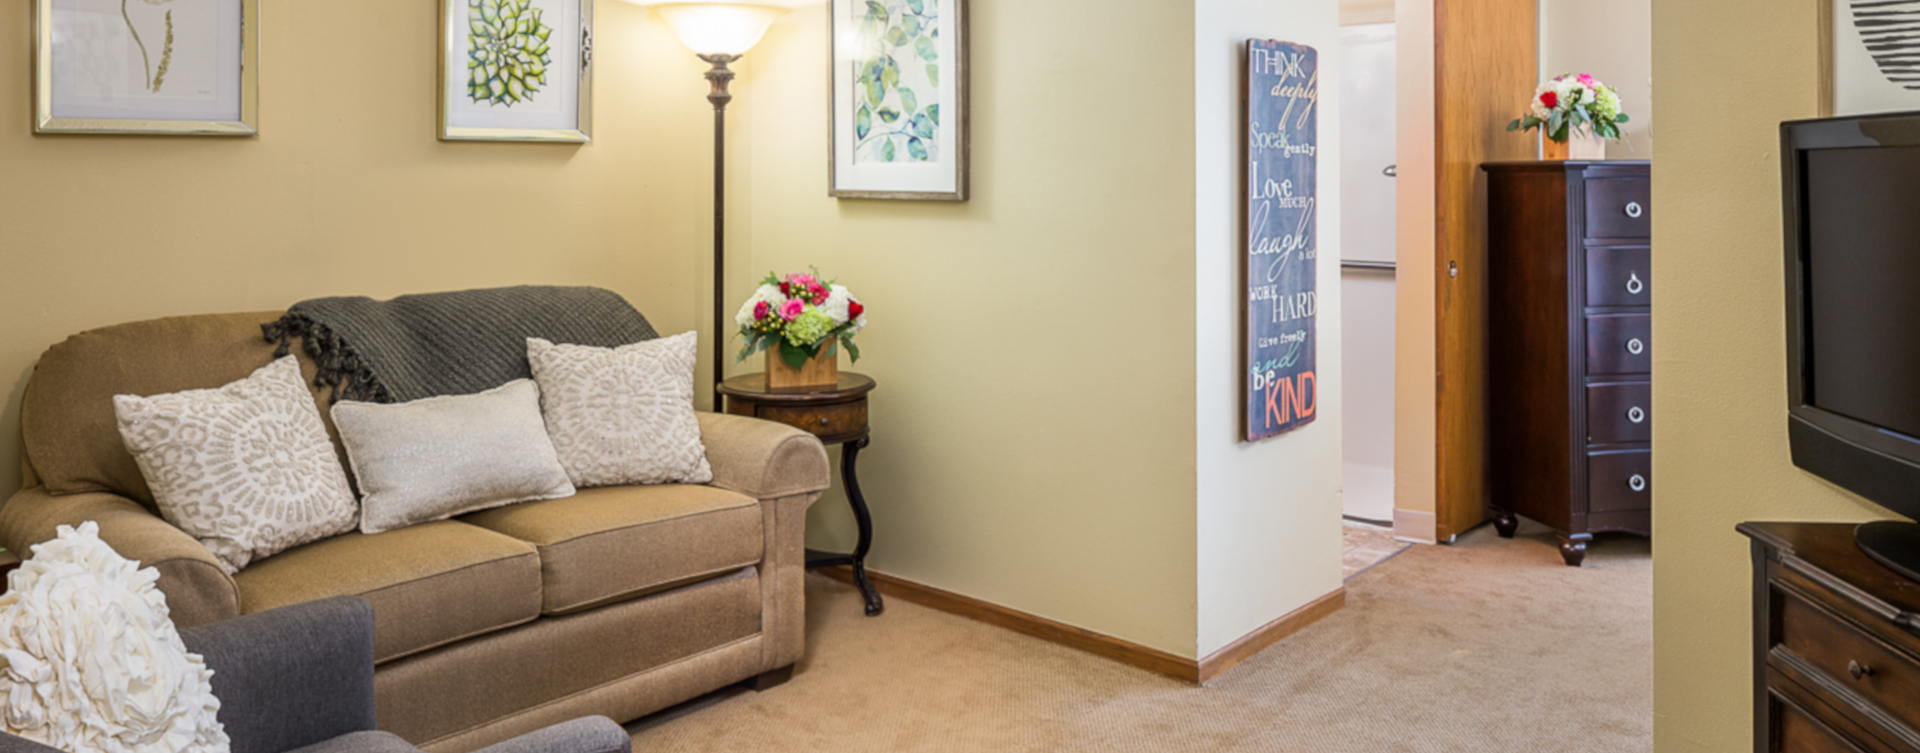 Enjoy senior friendly amenities, personal climate control and security in an apartment at Bickford of Urbandale